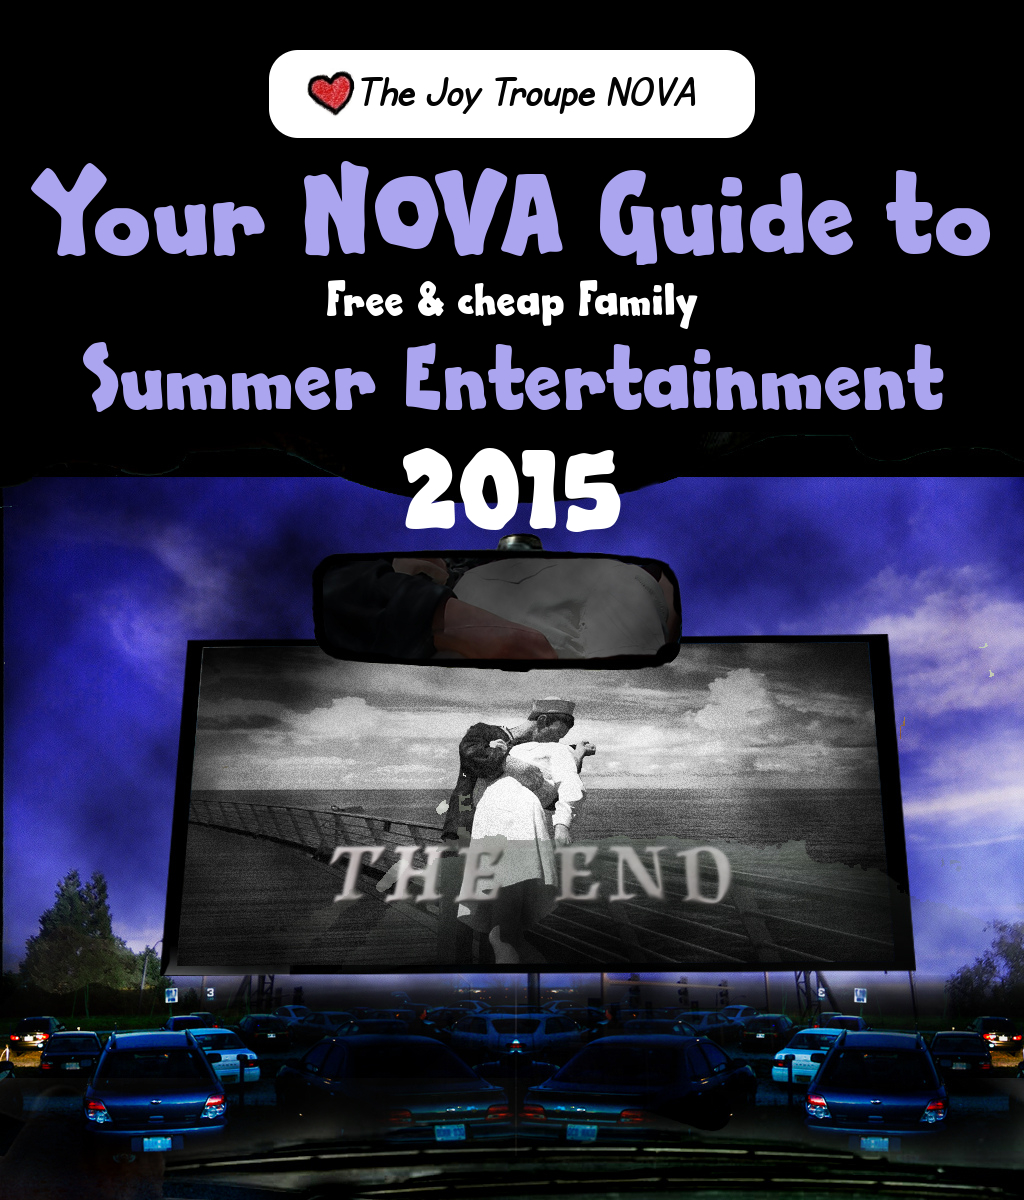 Free & Cheap Family summer entertainment guide 2015 NOVA The Joy Troupe NOVA